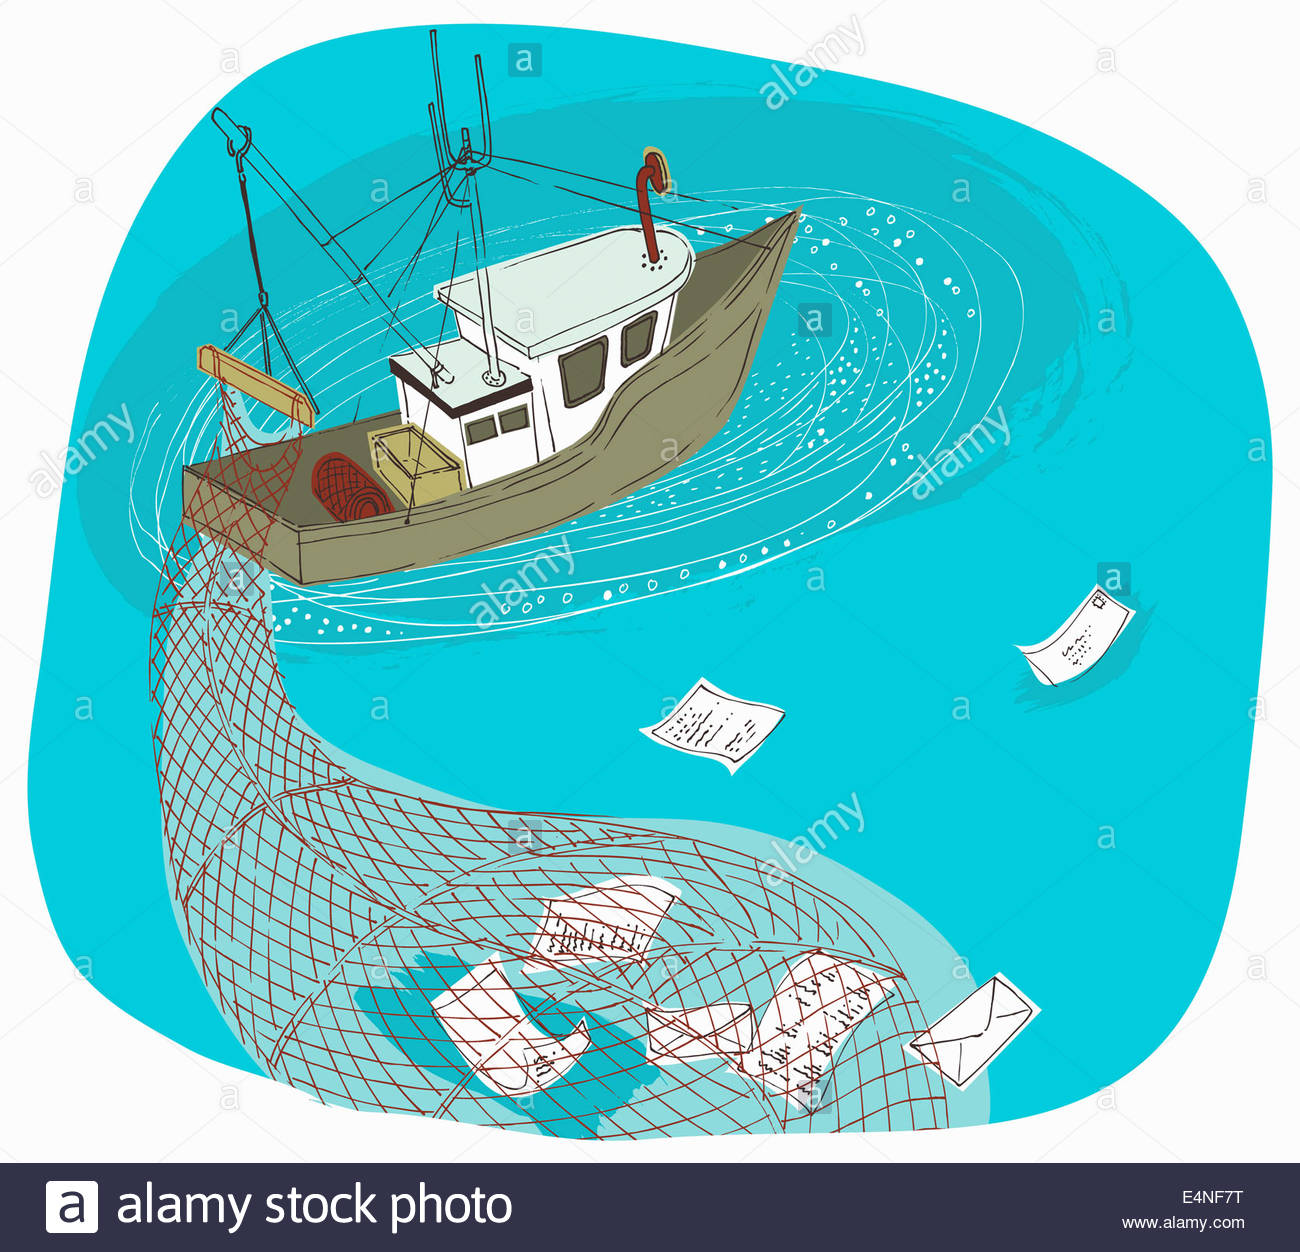 Trawler boat with net phishing and gathering information - Stock Image